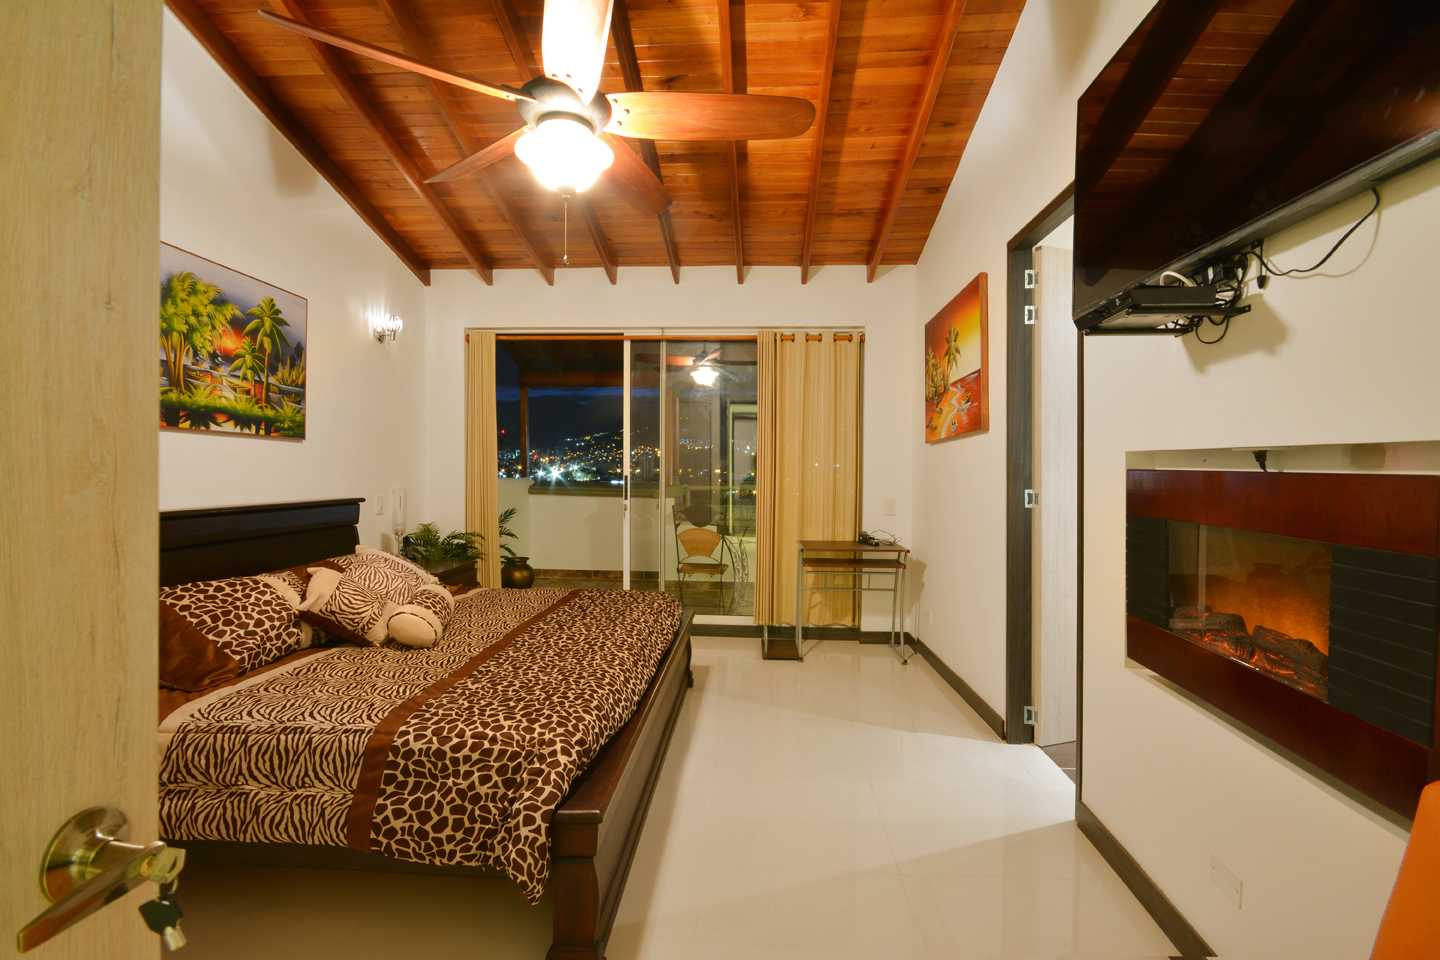 Bedroom 1 with fireplace, outdoor deck, flat screen TV, high ceilings and ceiling fan in Astorga duplex